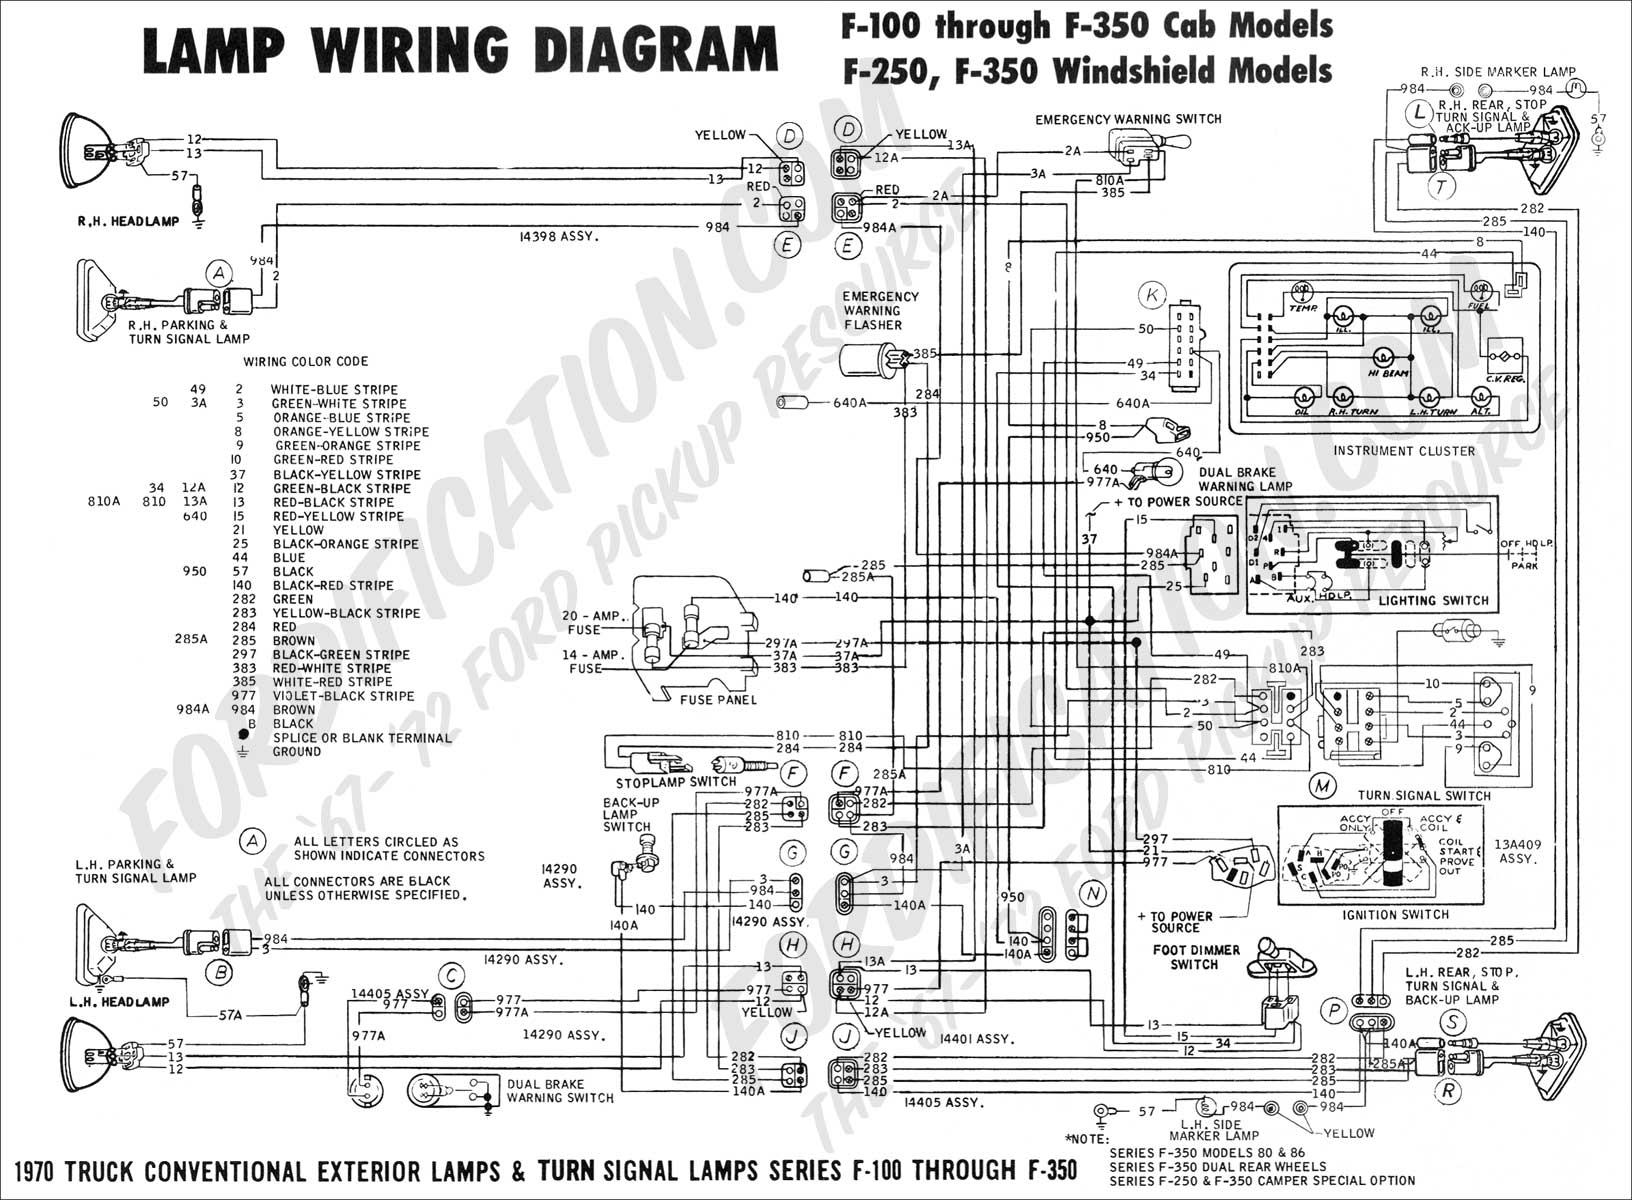 F250 Wiring Diagram - Wiring Diagram Schematic - 02 F350 Trailer Wiring Diagram